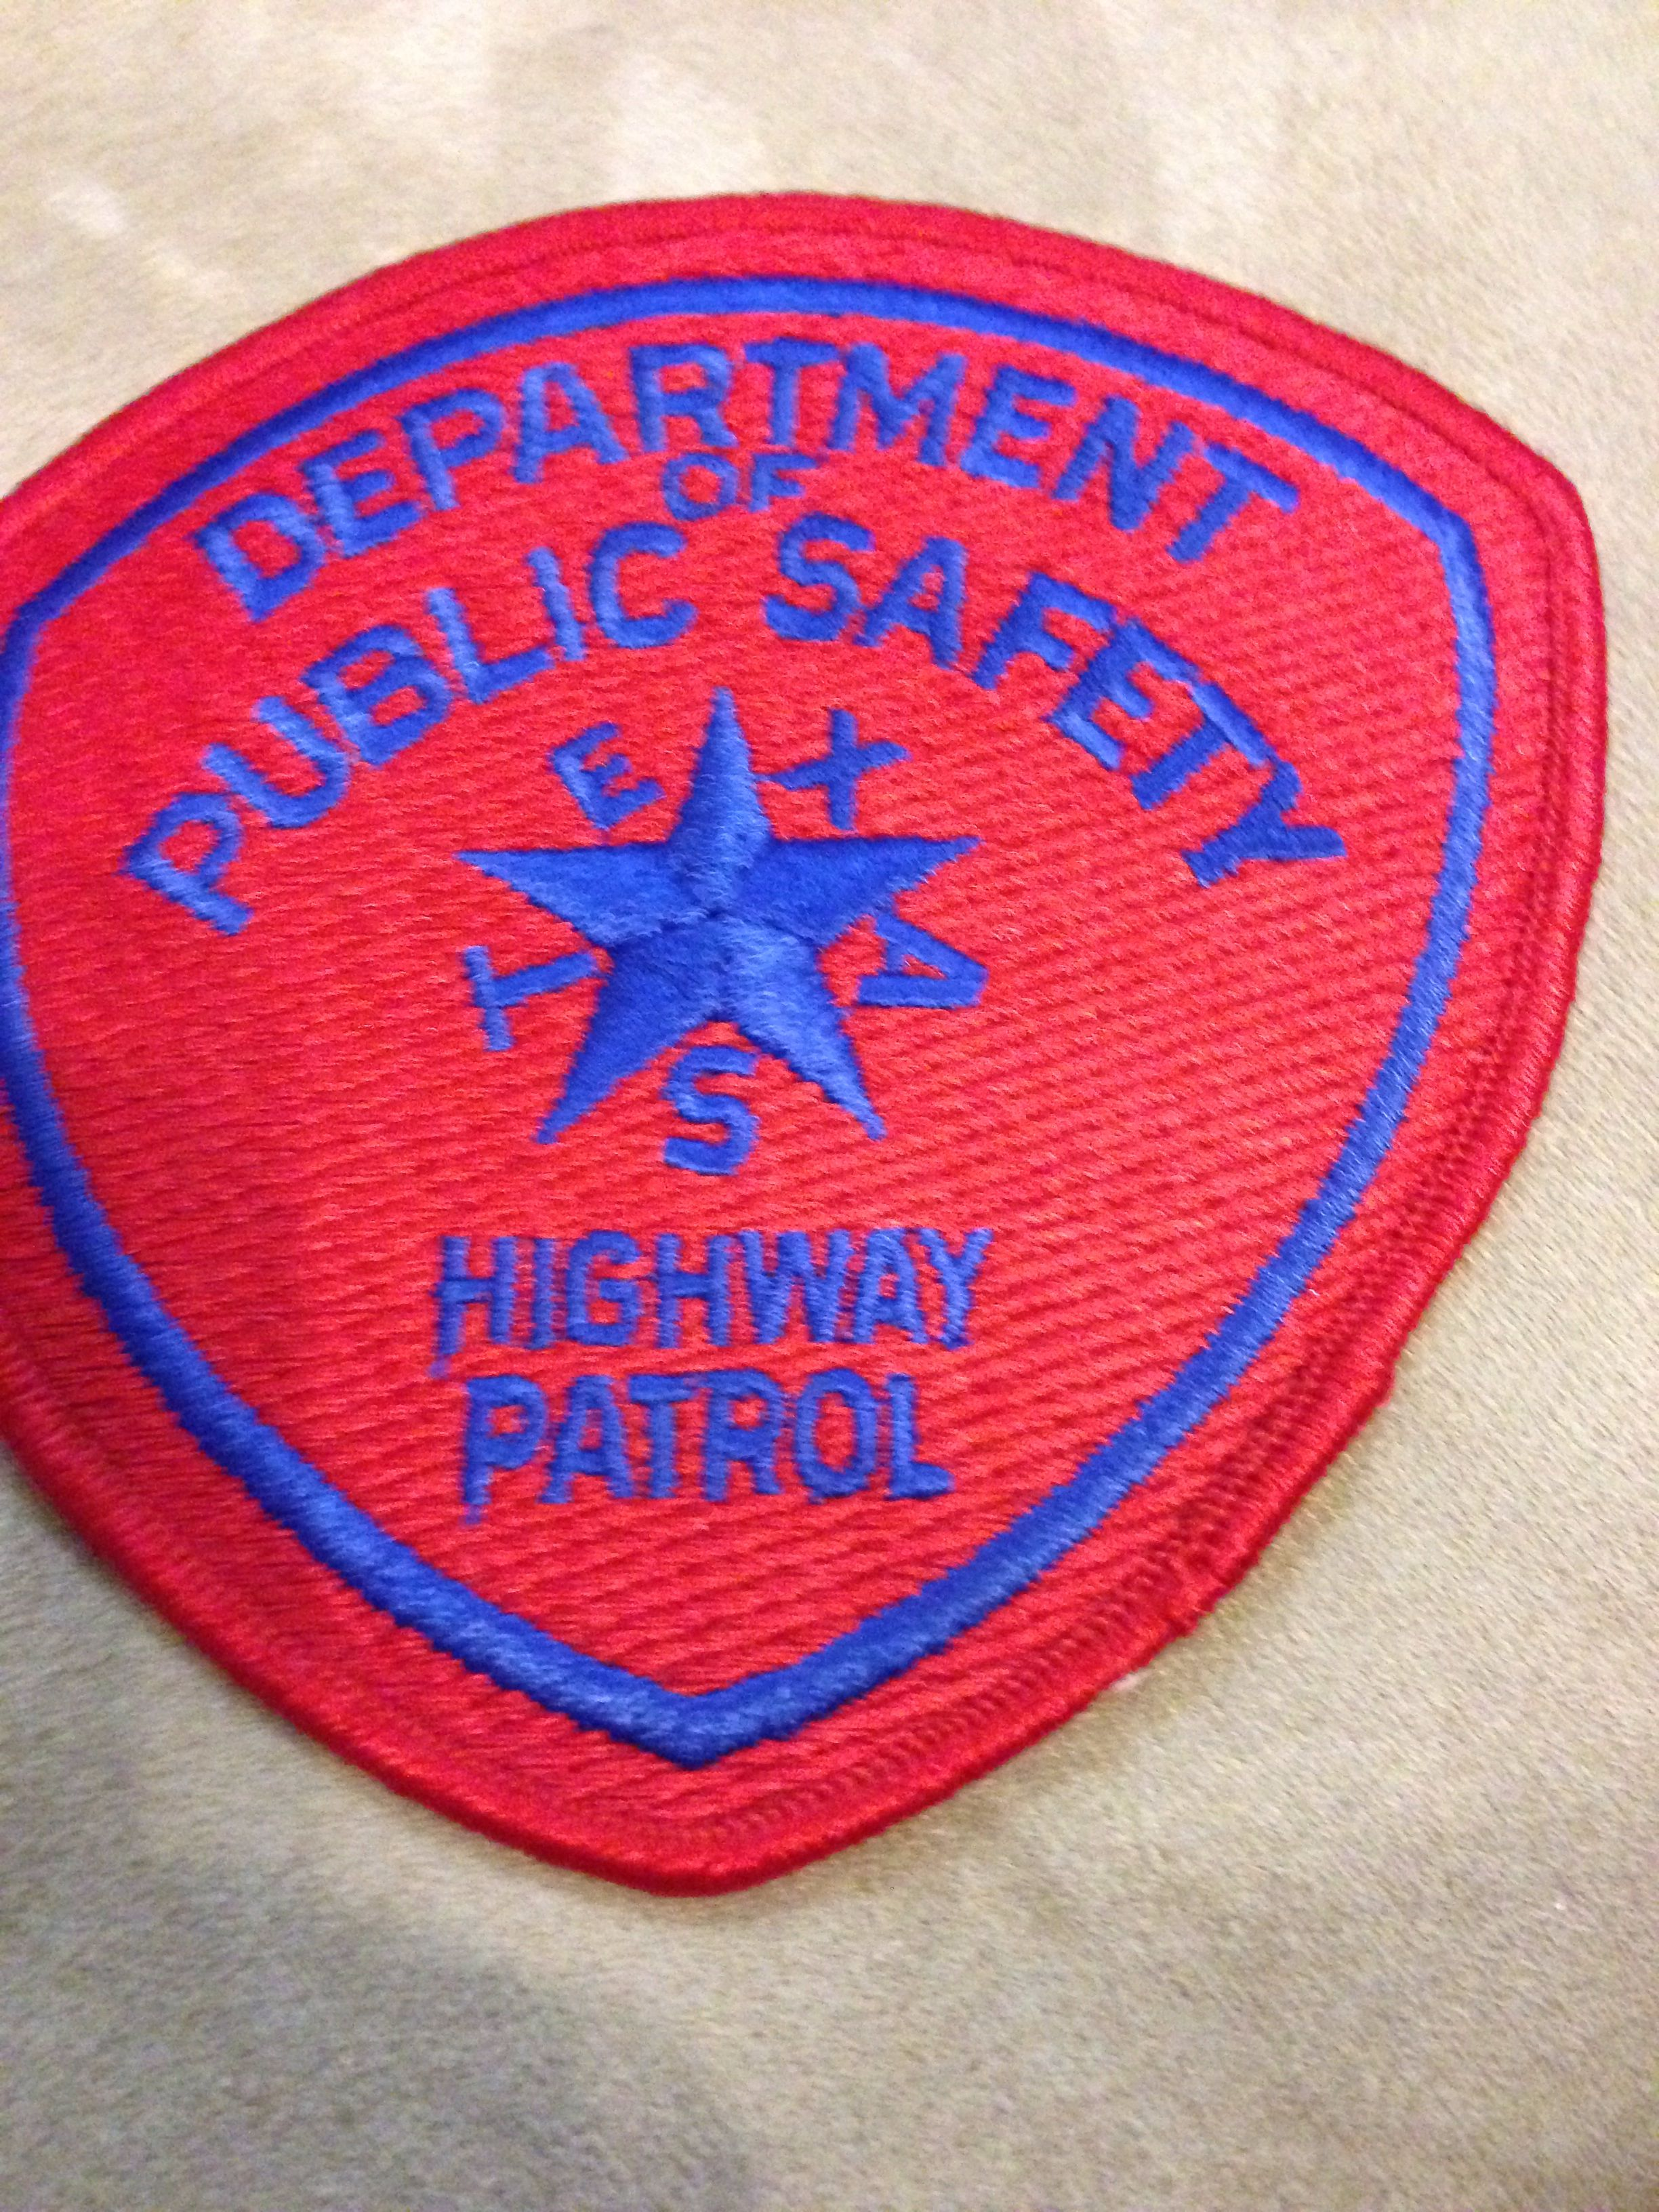 Texas Department of Public Safety Highway Patrol Police